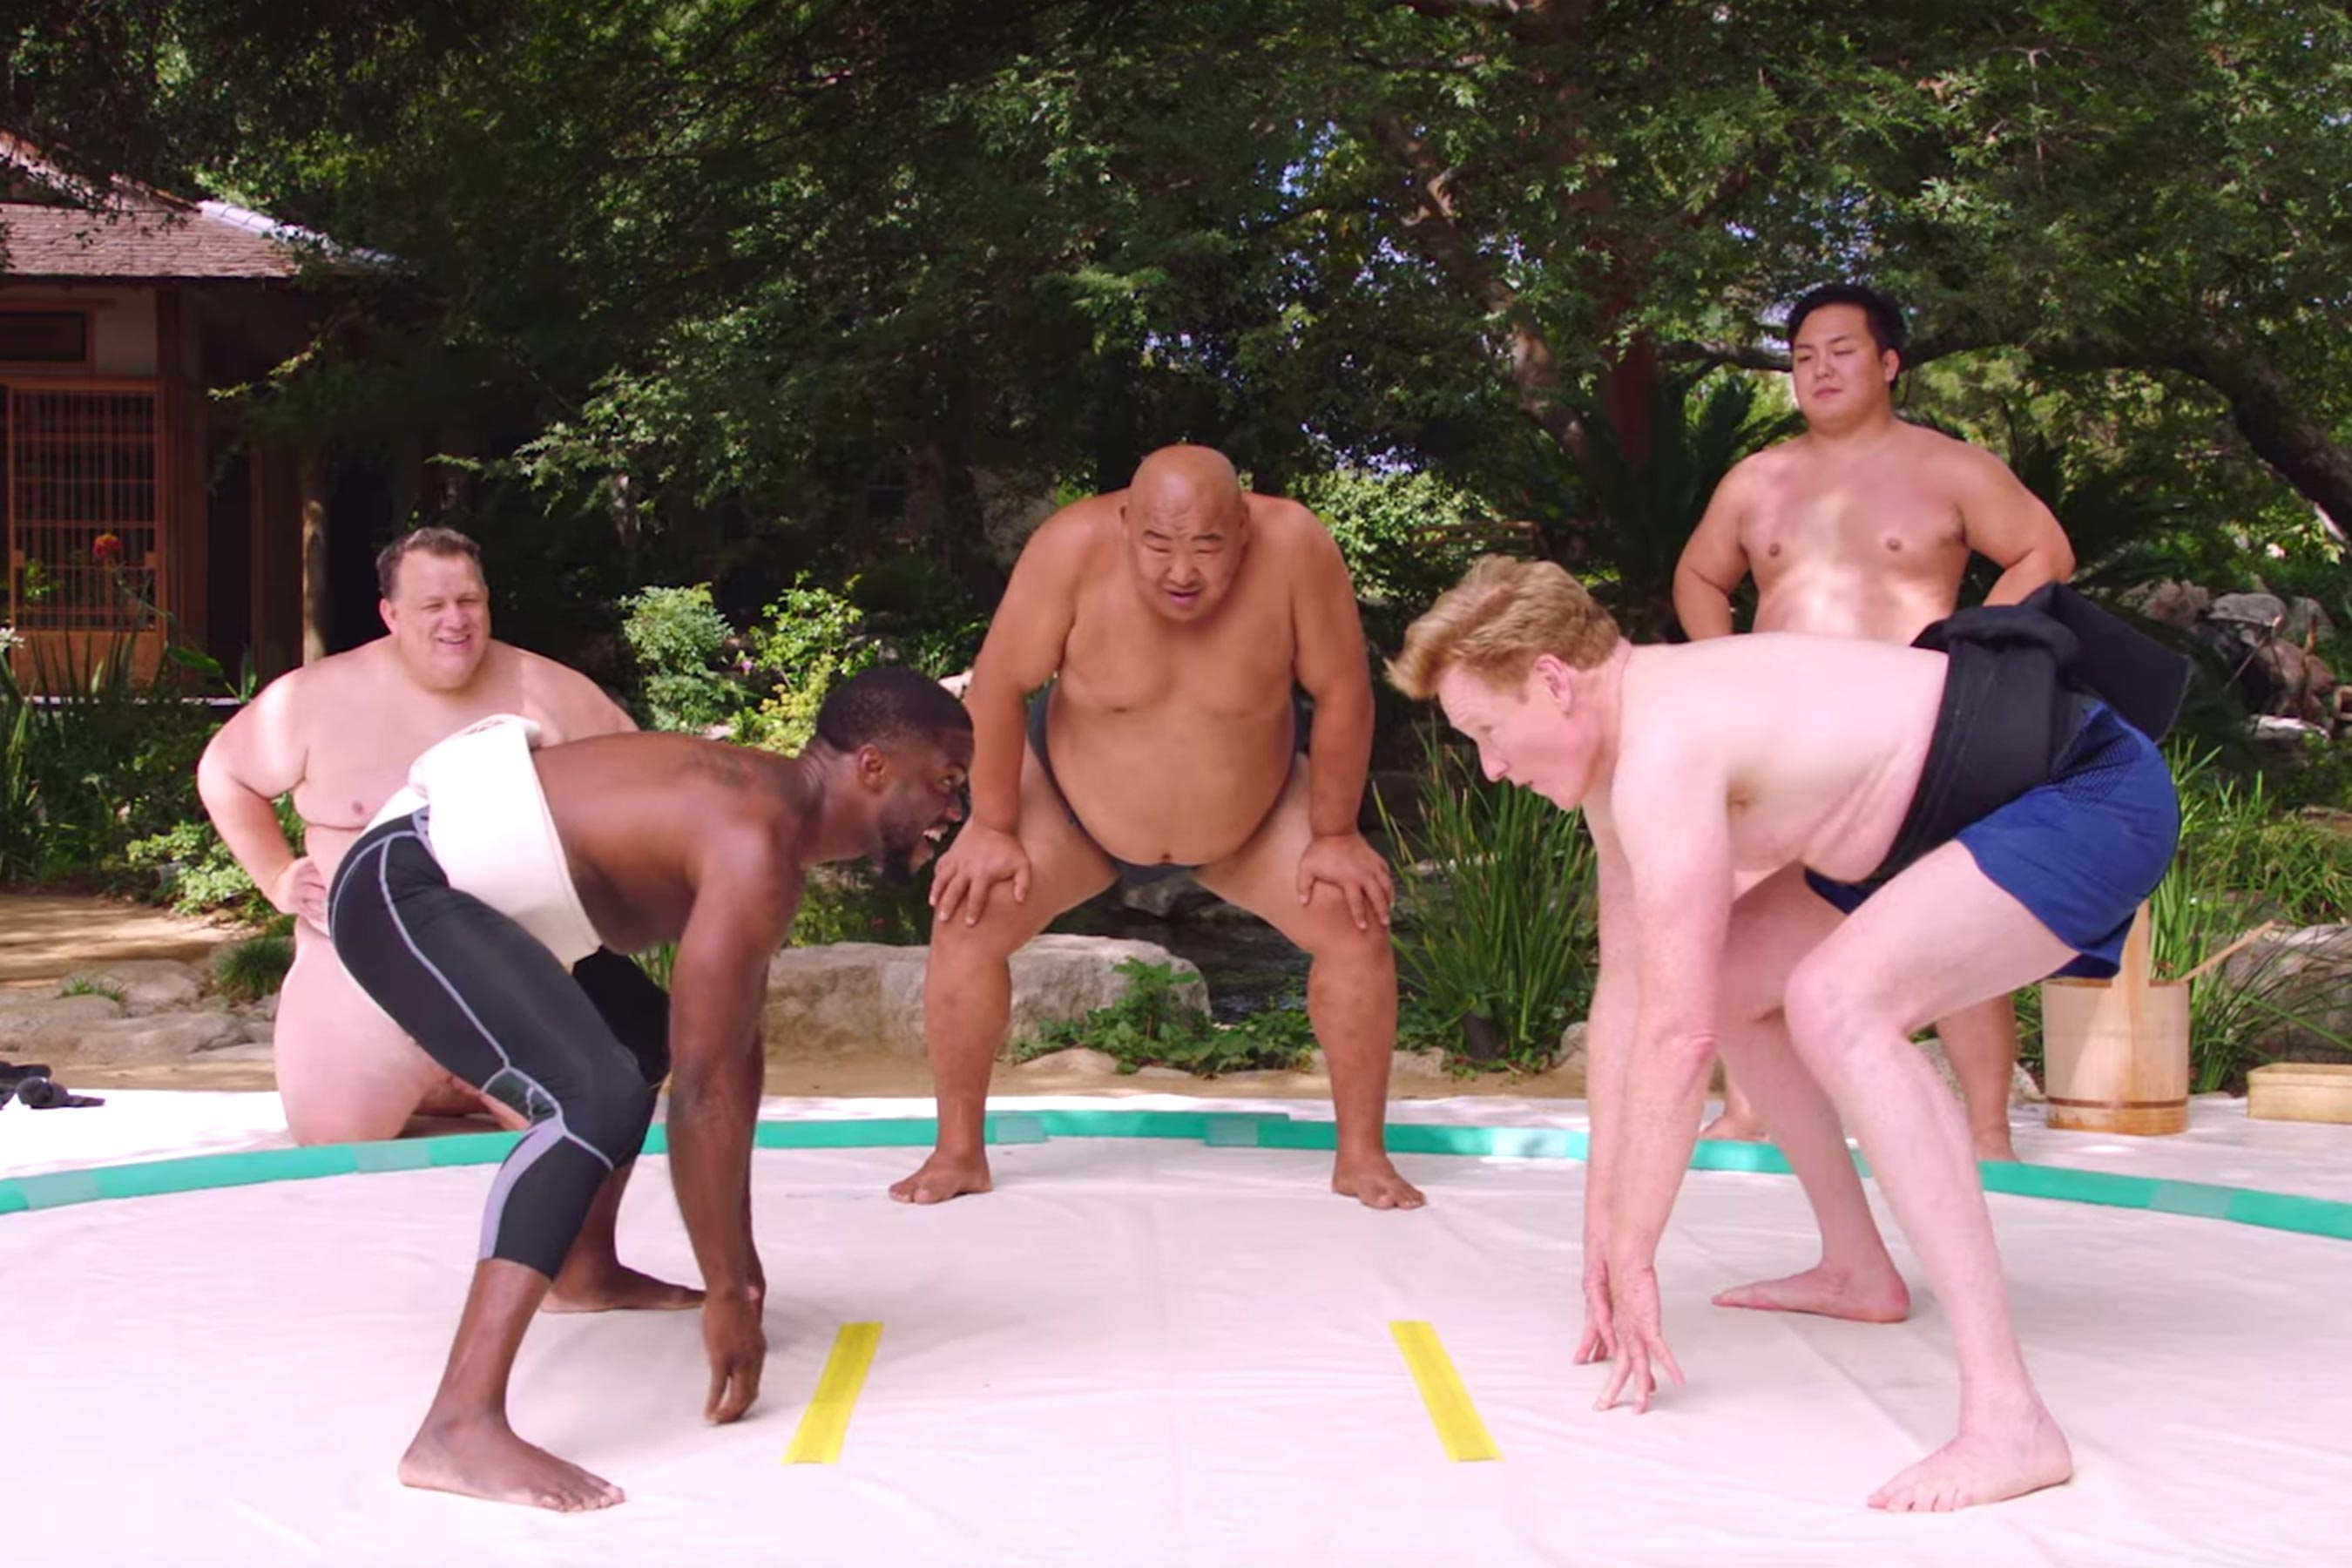 Kevin Hart: What the Fit trailer makes Conan O'Brien sumo wrestle